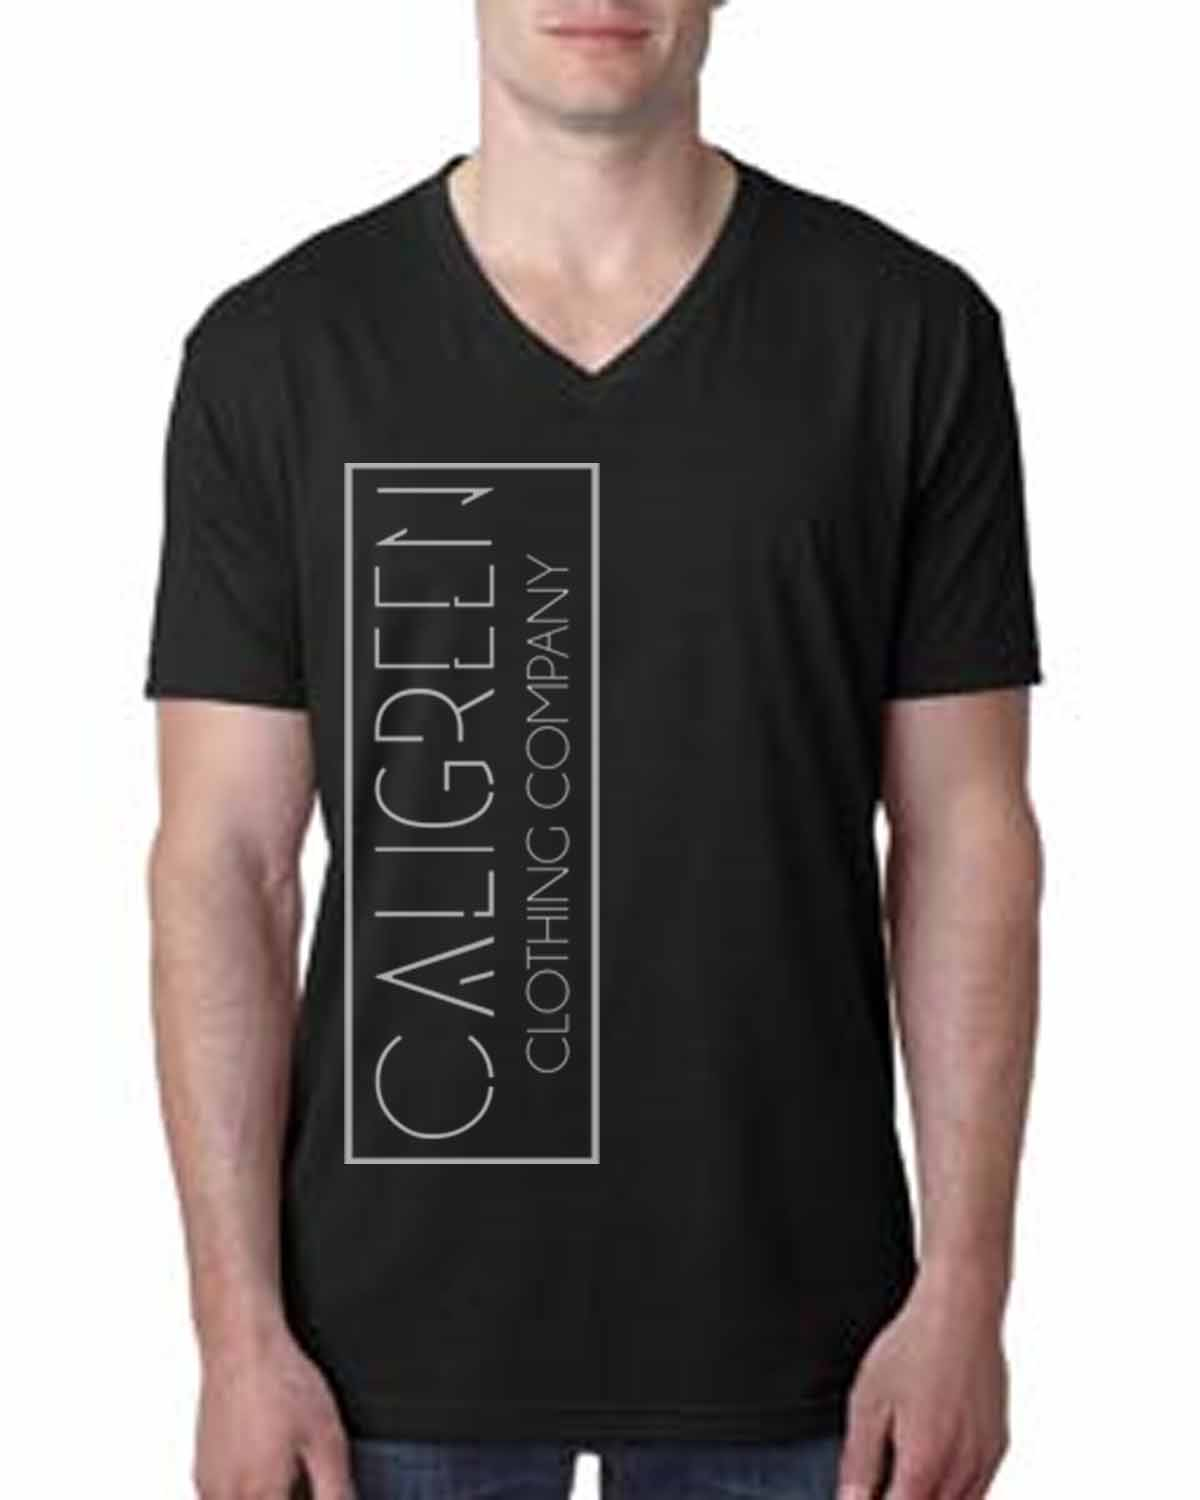 Caligreen Classic V-Neck Black